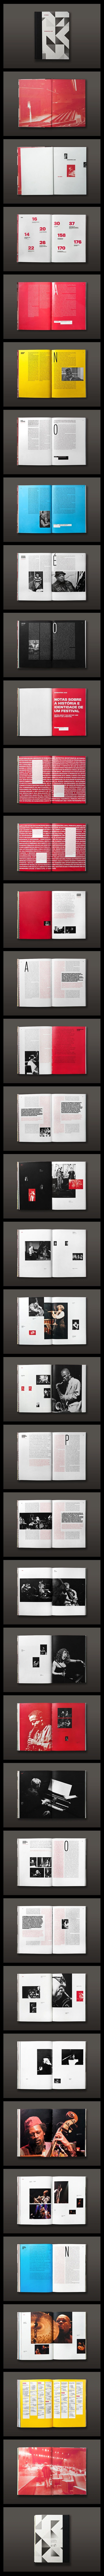 Jazz 20 Year Edition Book   Cool Printed Brochure Designs